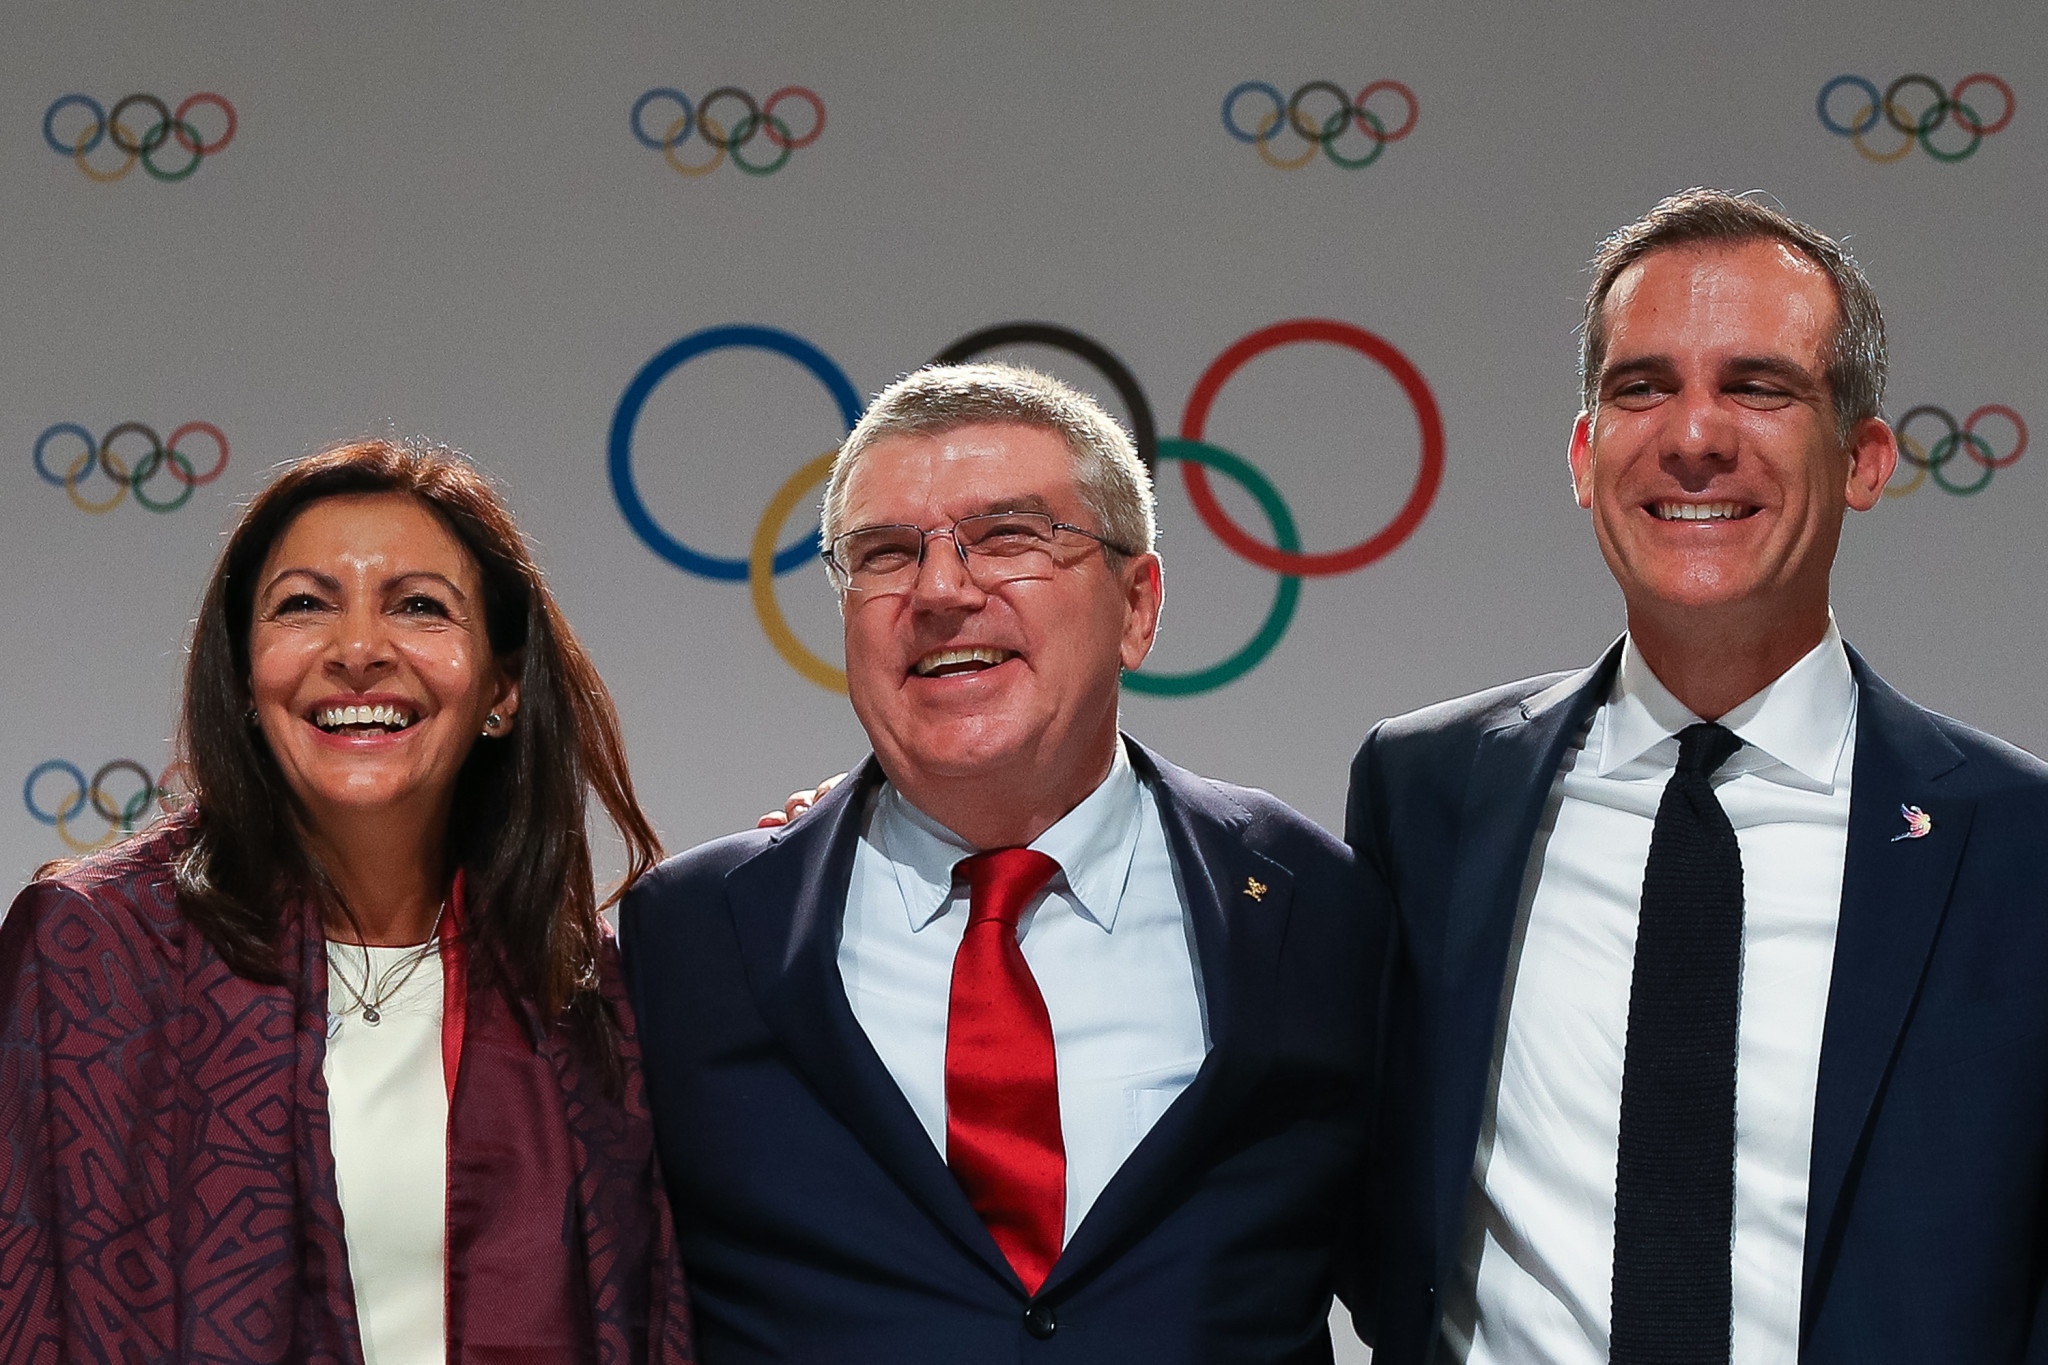 The two Mayors were central to their city's Olympic bids ©Getty Images